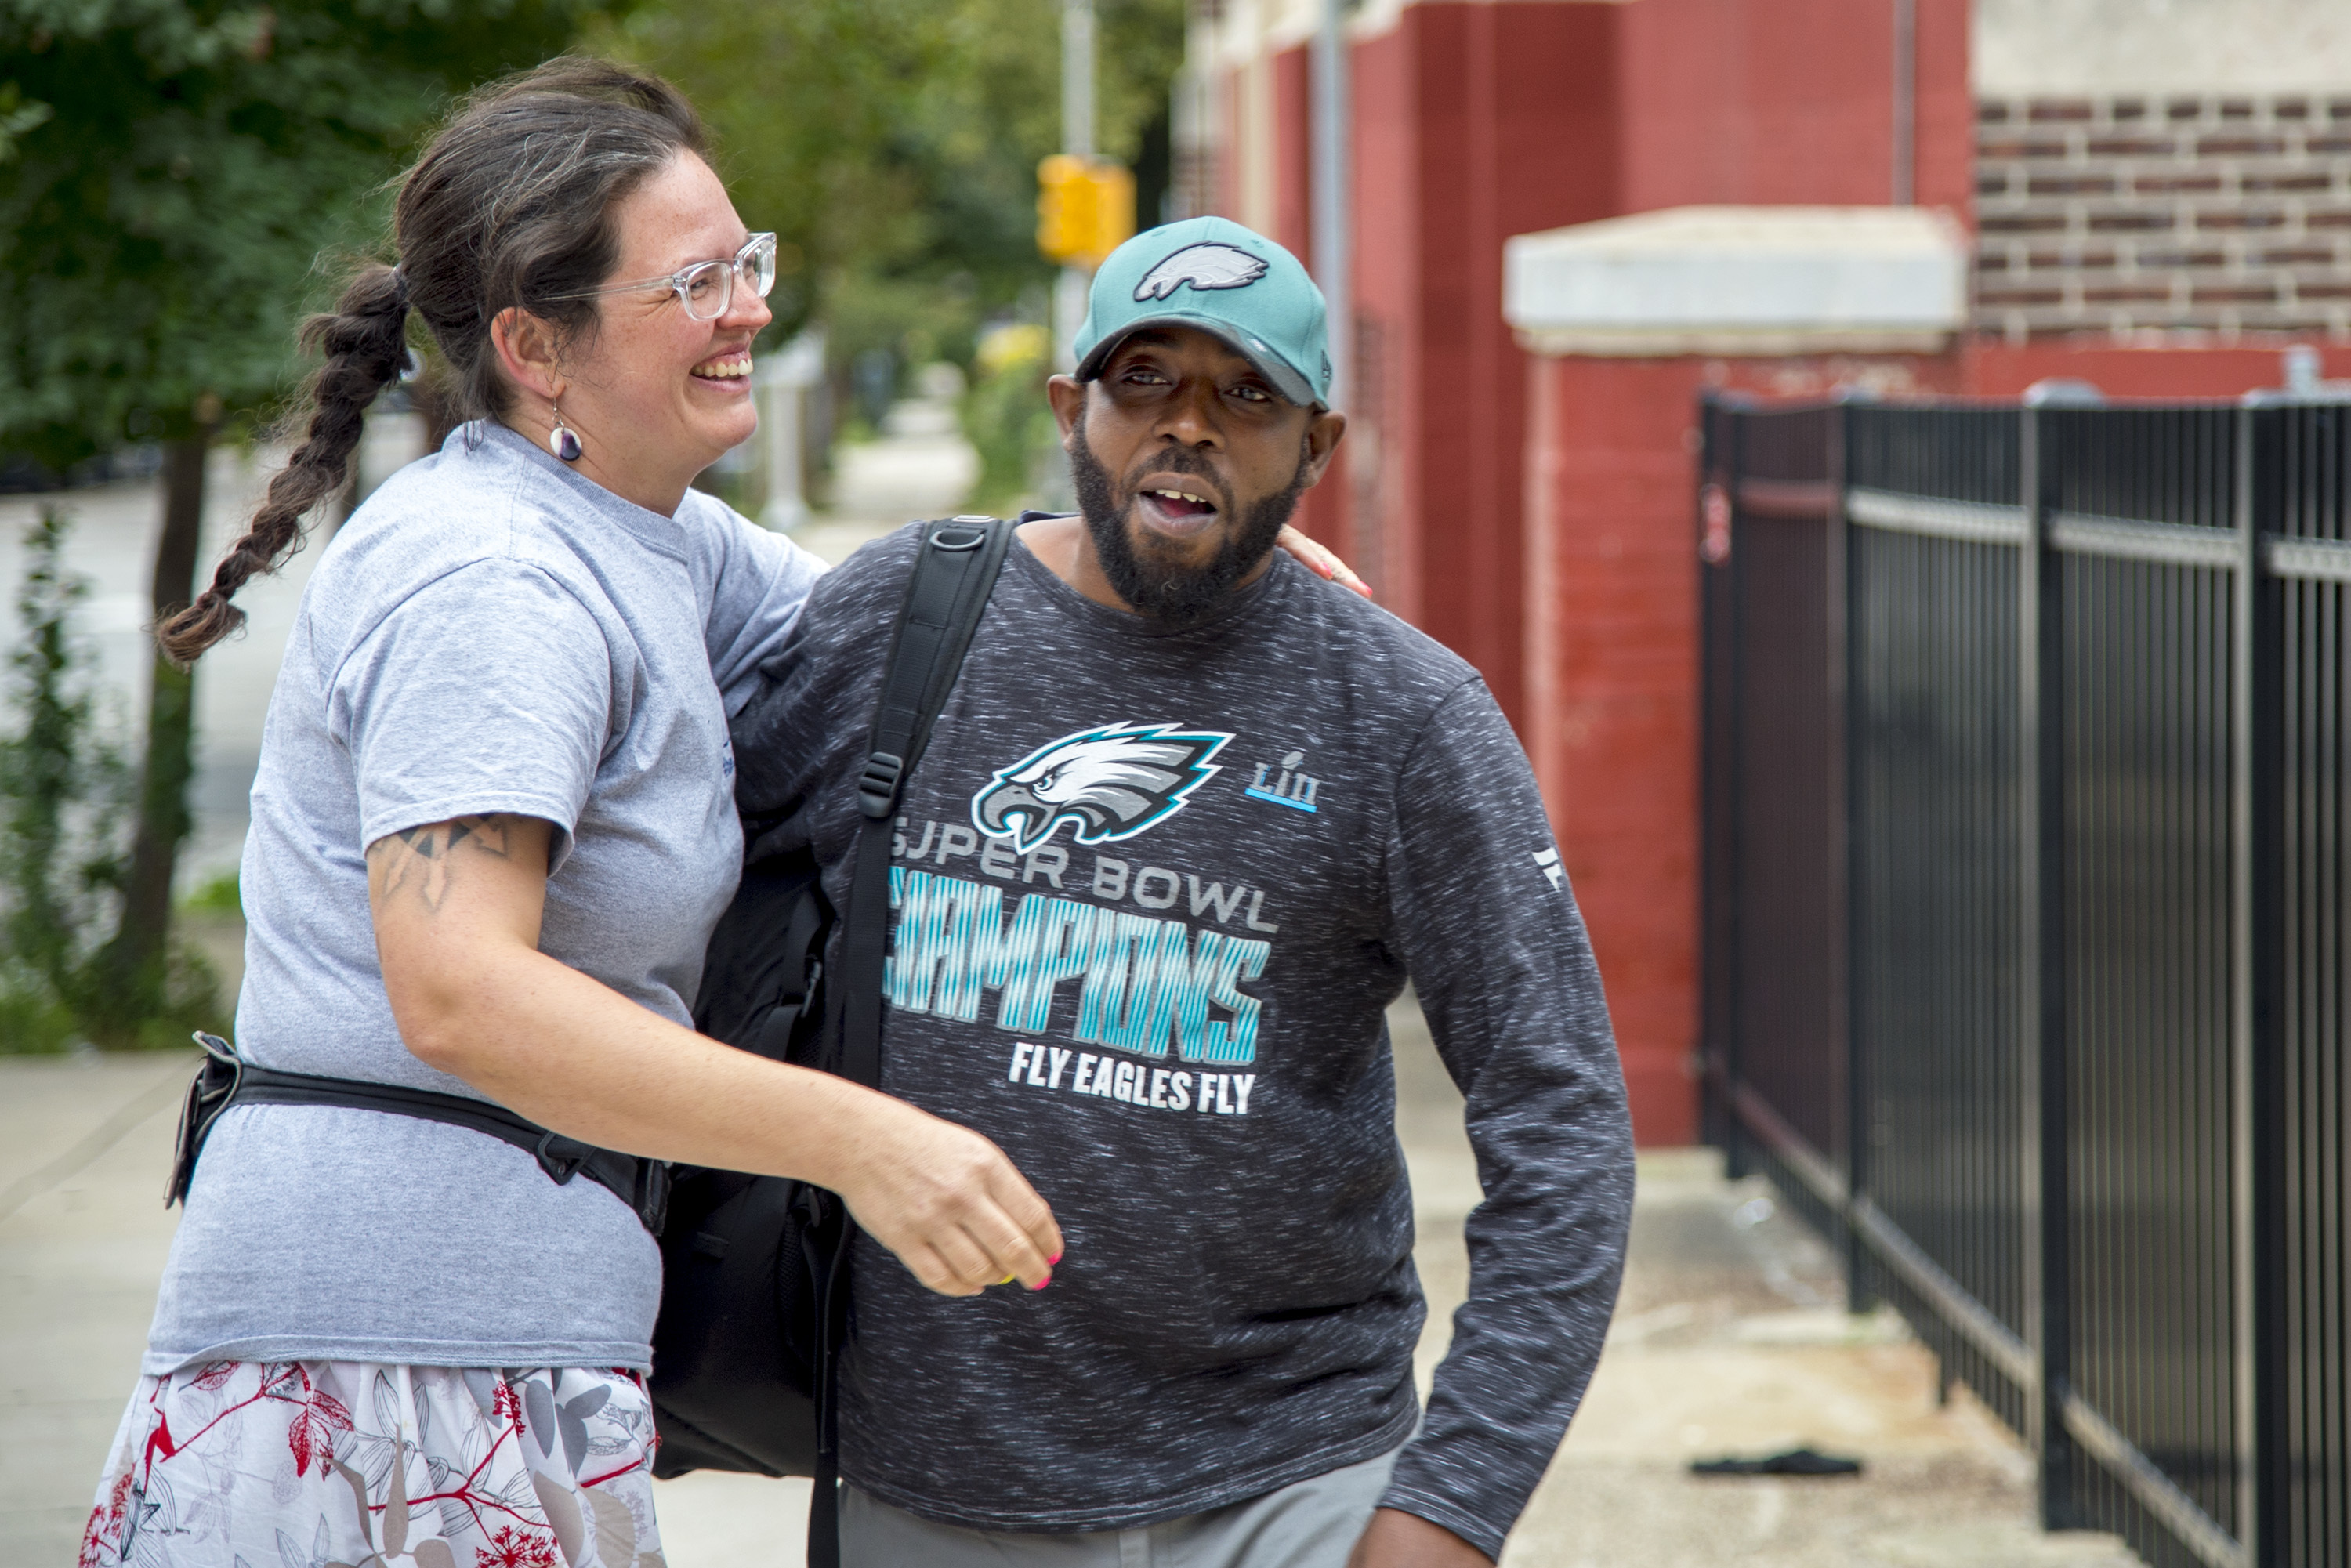 """Henry C. Lea Elementary School teacher Kitty Heite (left) greets school employee Anthony Brown outside the school. She is being forced to leave as the school undergoes """"leveling"""" - the shifting of teachers to other schools based on fluxes in enrollment."""